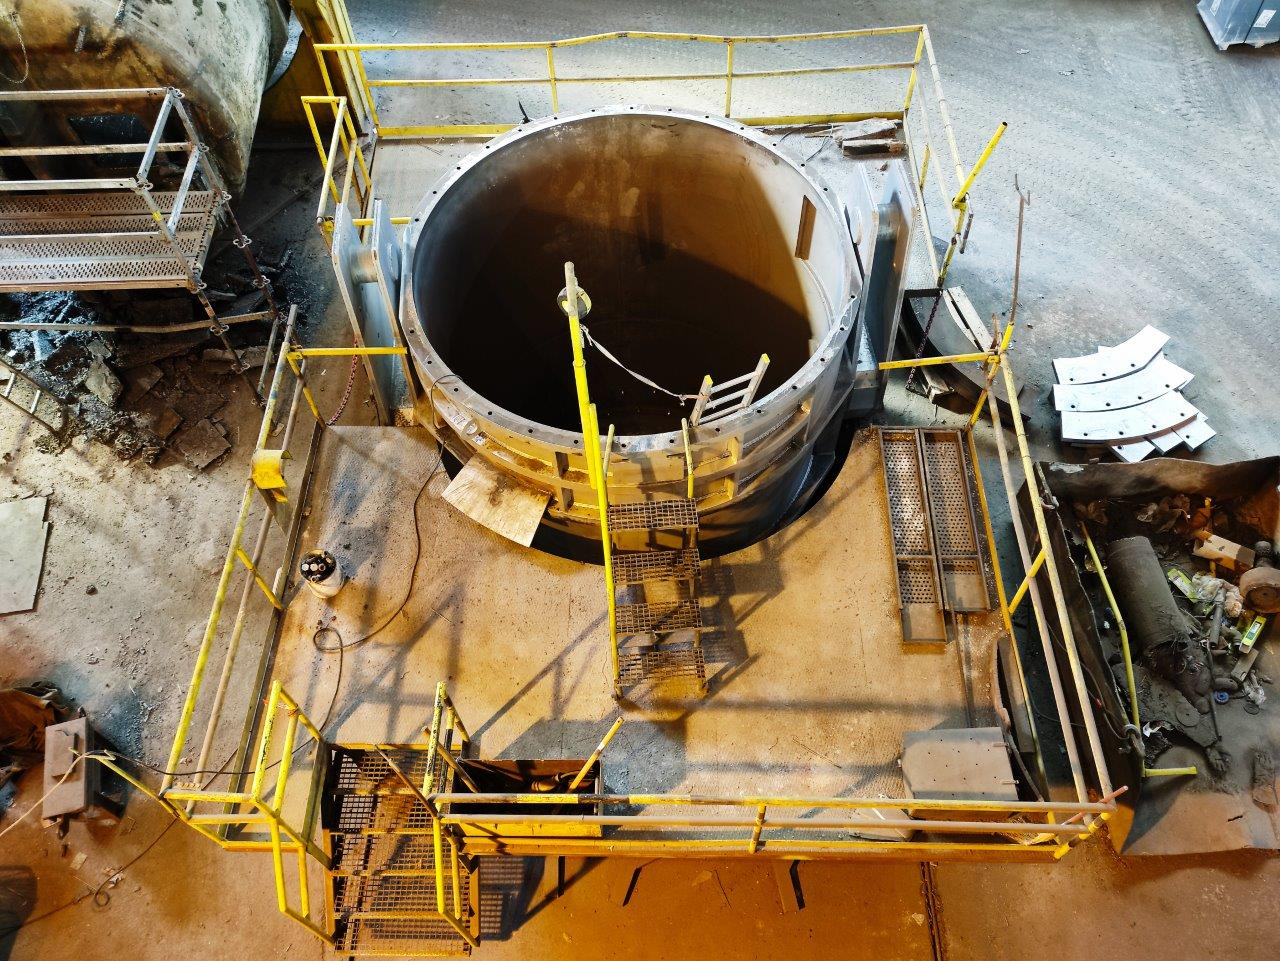 Self-flowing castable as  a backup lining in steel mill ladle.